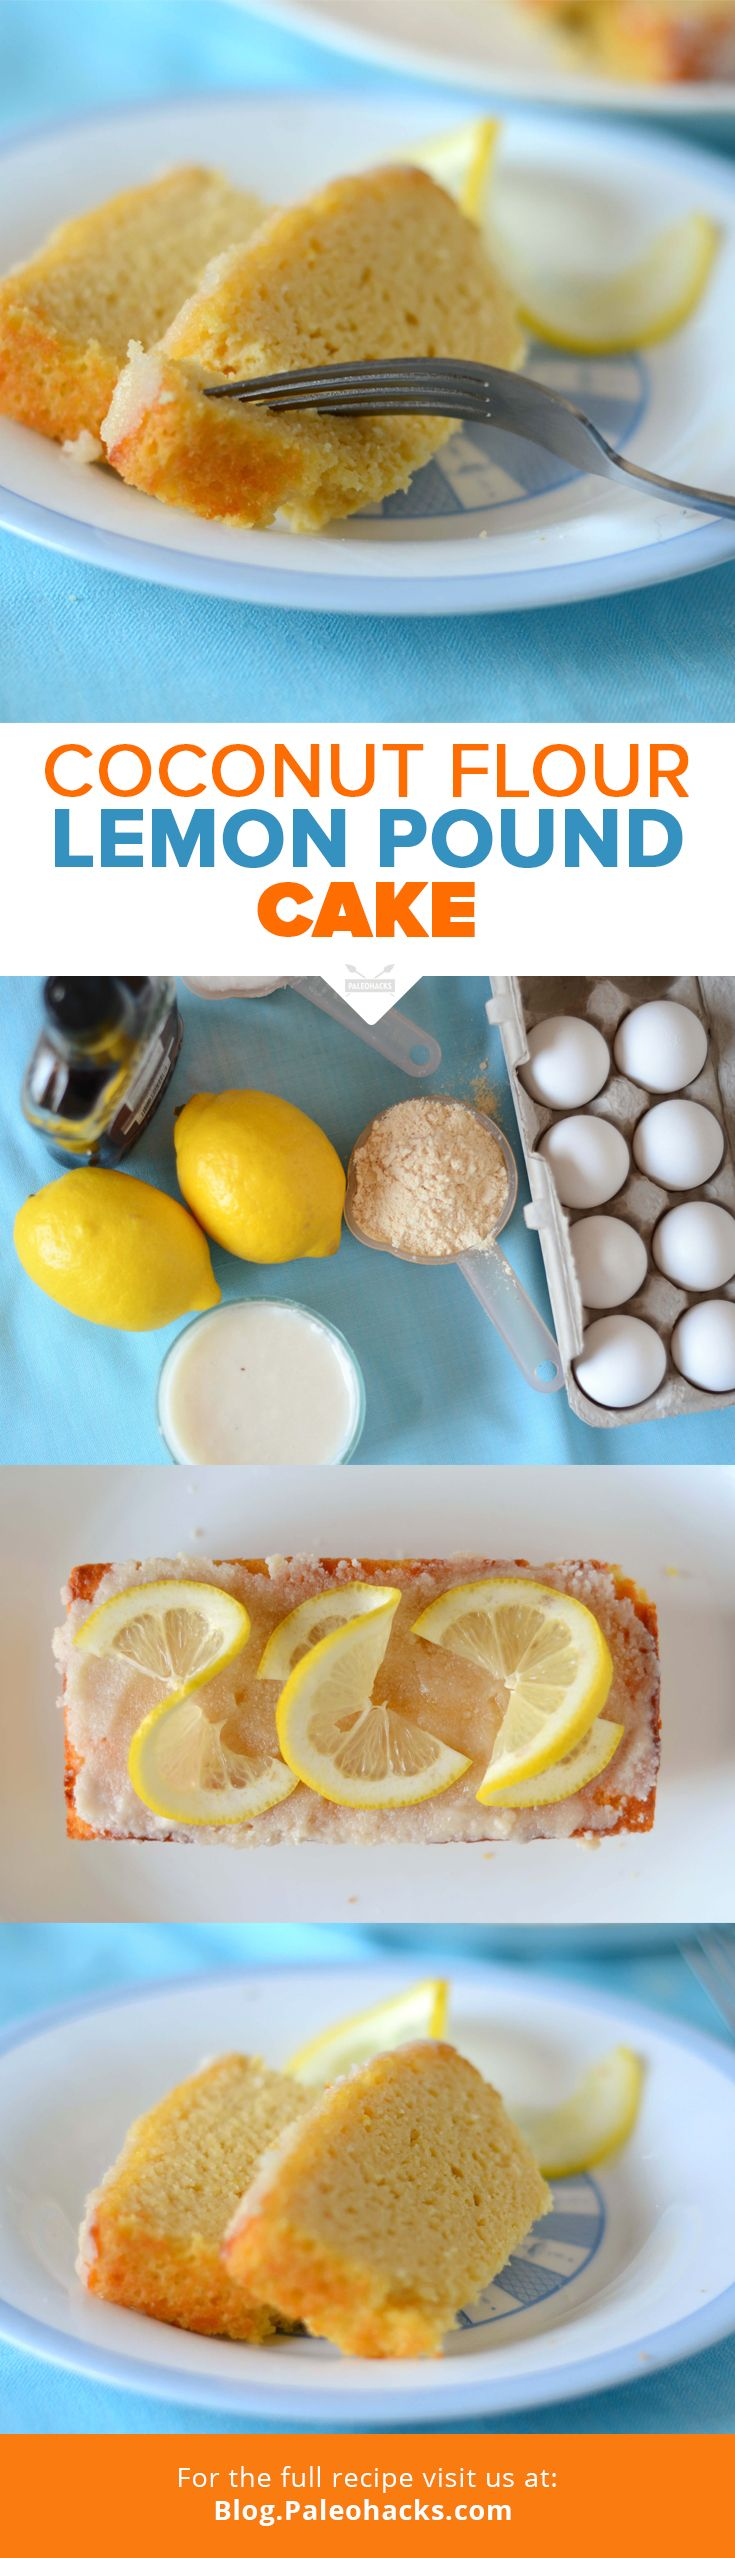 Want a luscious Paleo dessert that's a take on a beloved classic? Try this fluffy and soft lemon pound cake bursting with lemon flavor! For the full recipe visit us at: http://paleo.co/LemPCake #paleohacks #paleo